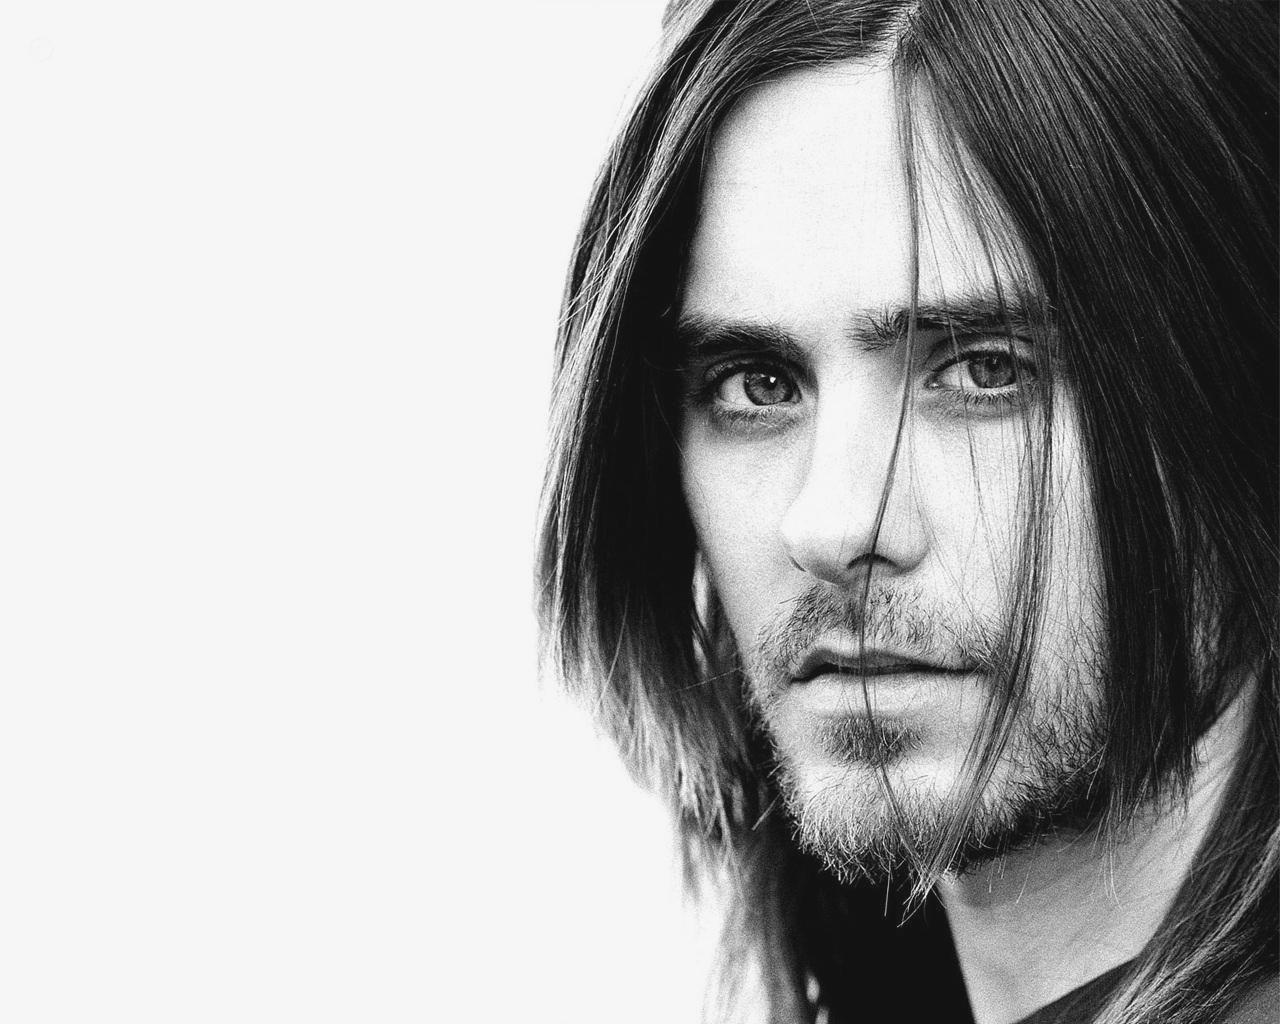 Jared Leto Wallpapers - Wallpaper Cave